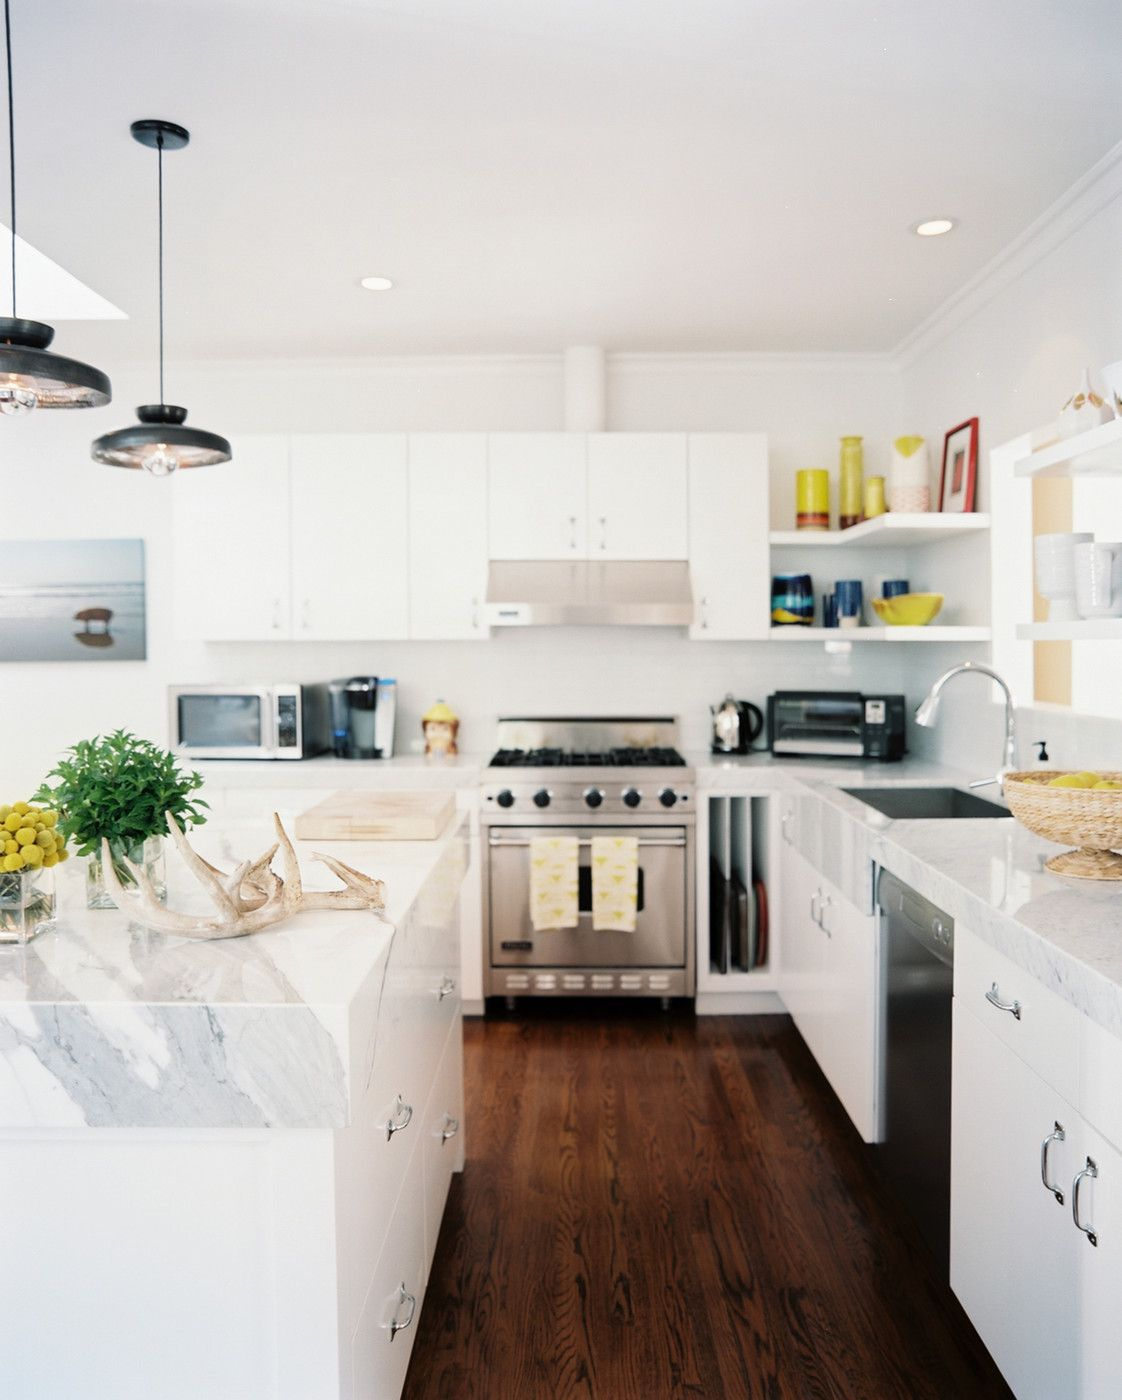 Marble countertops and white cabinetry in a bright kitchen.